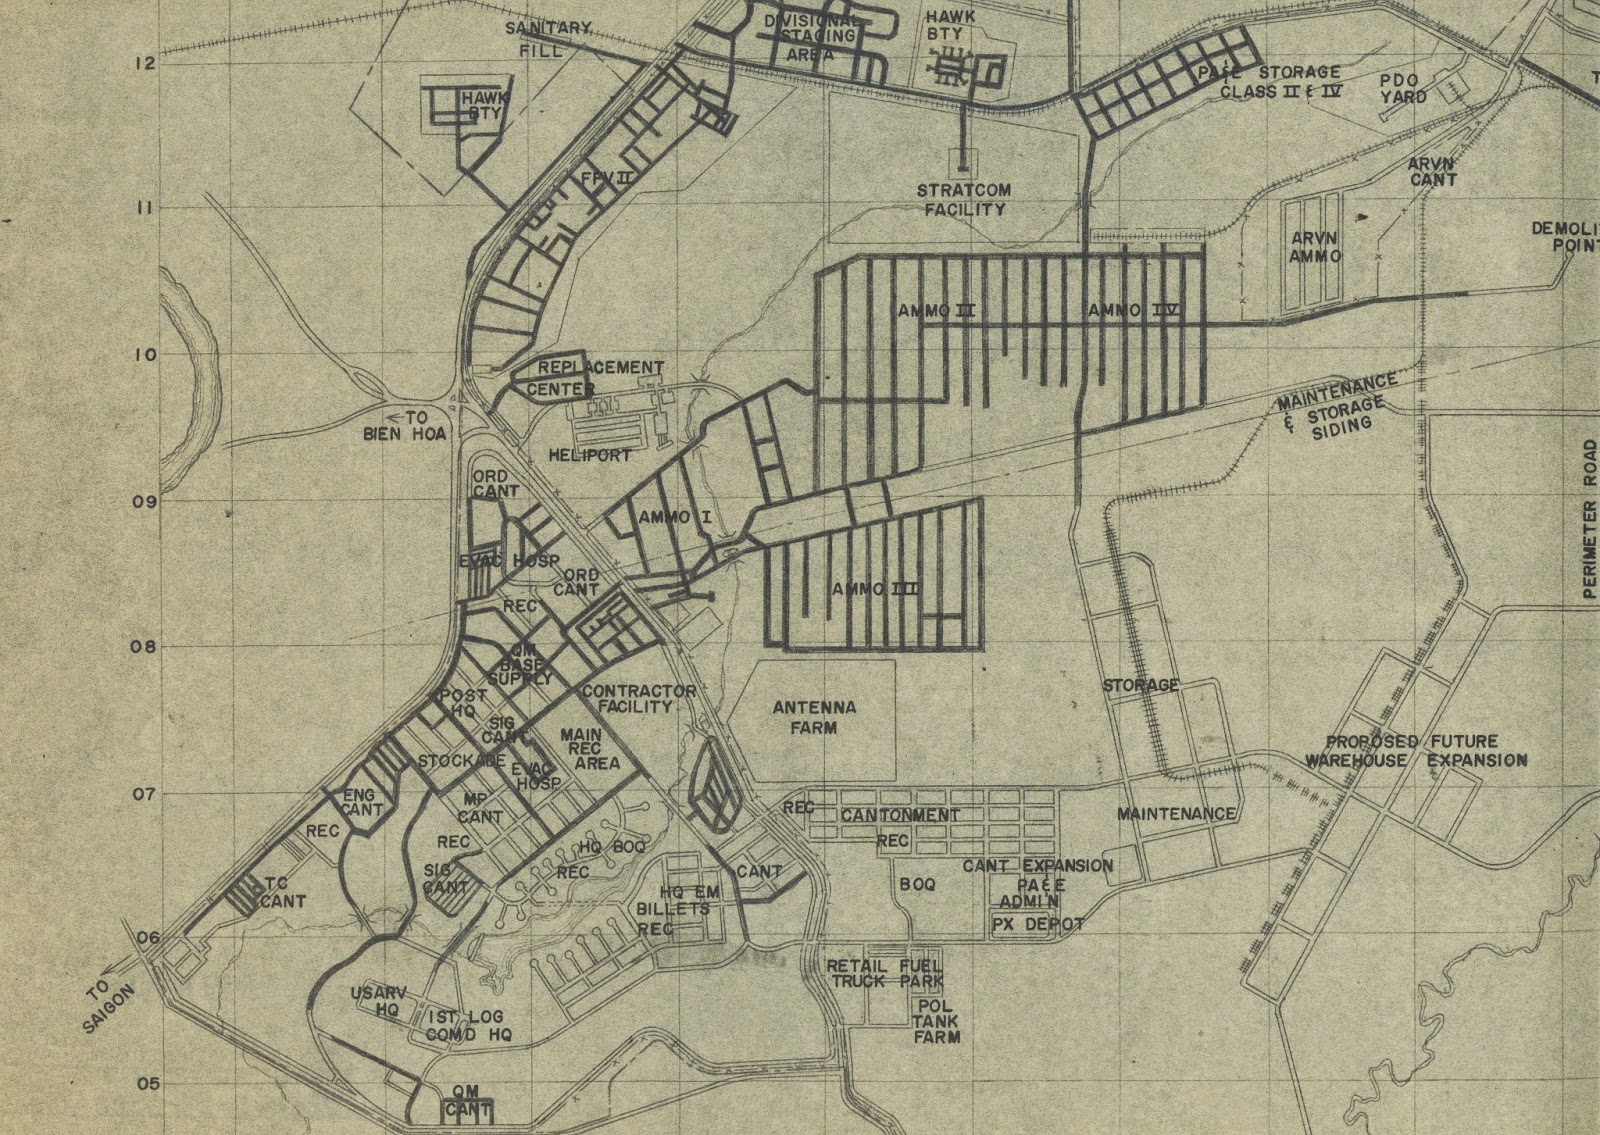 Gis Research And Map Collection Vietnam War Maps From